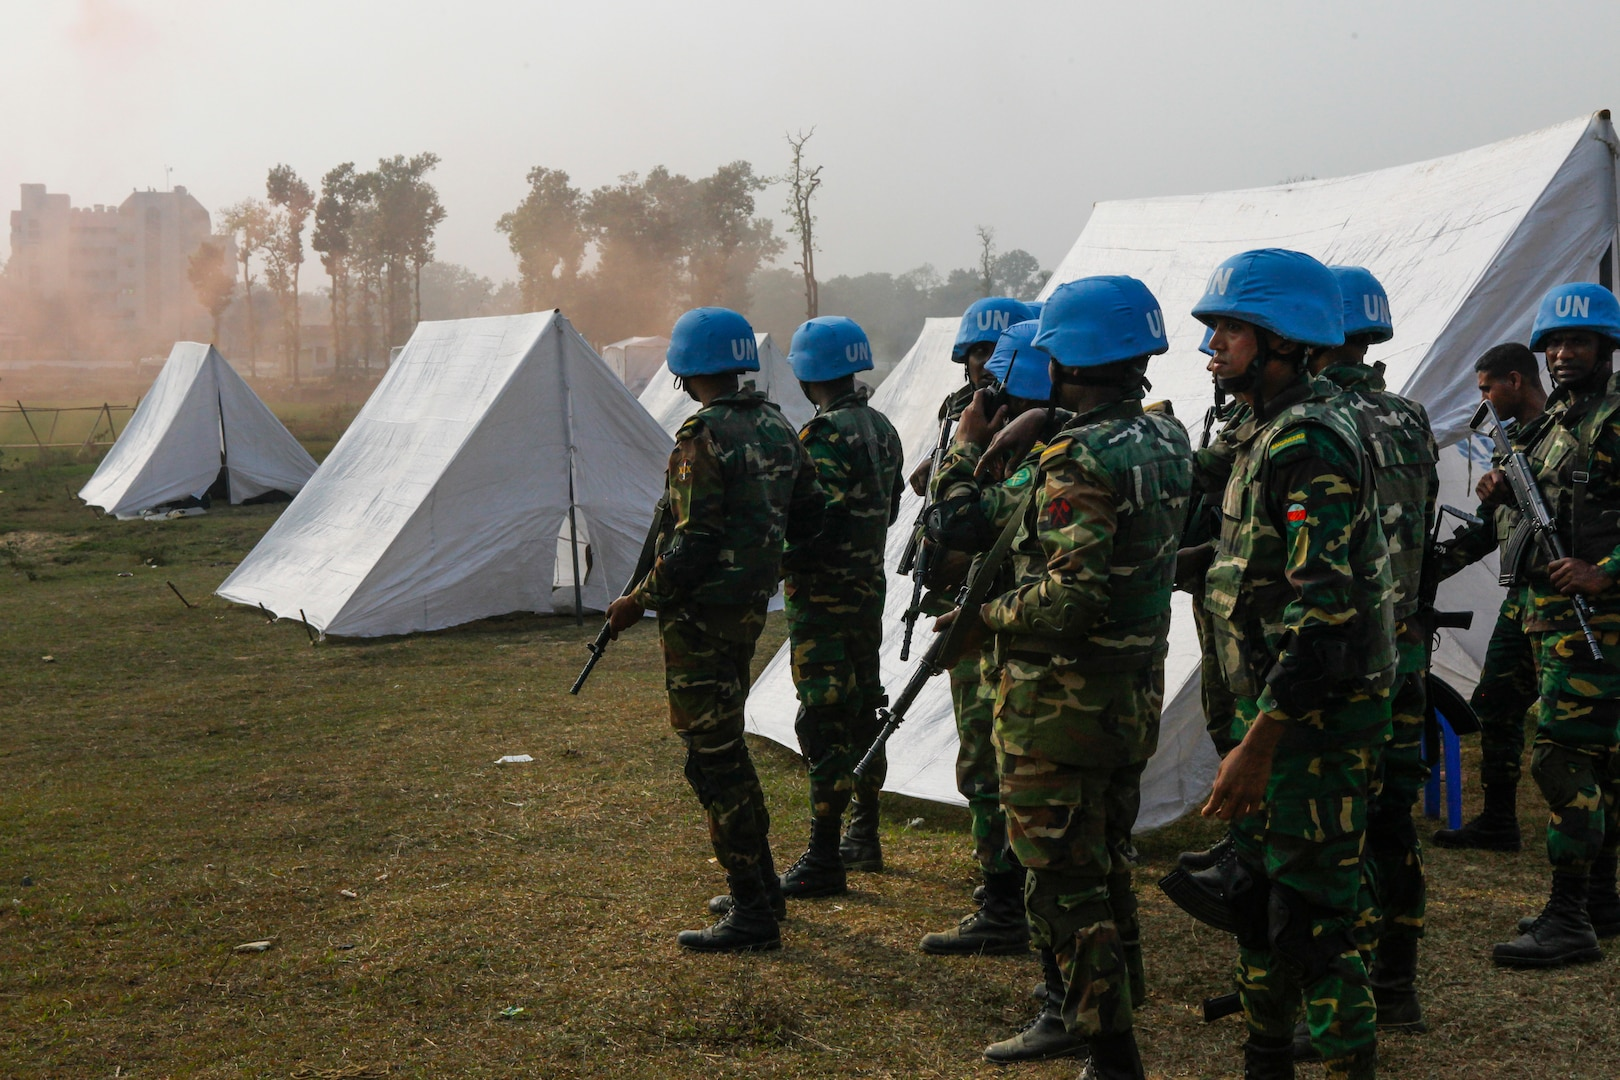 Bangladesh Army soldiers of the Engineer Corps prepare to counter attack role-players during a rehearsal for a demonstration as part of Exercise Shanti Doot 4 in Bangladesh.